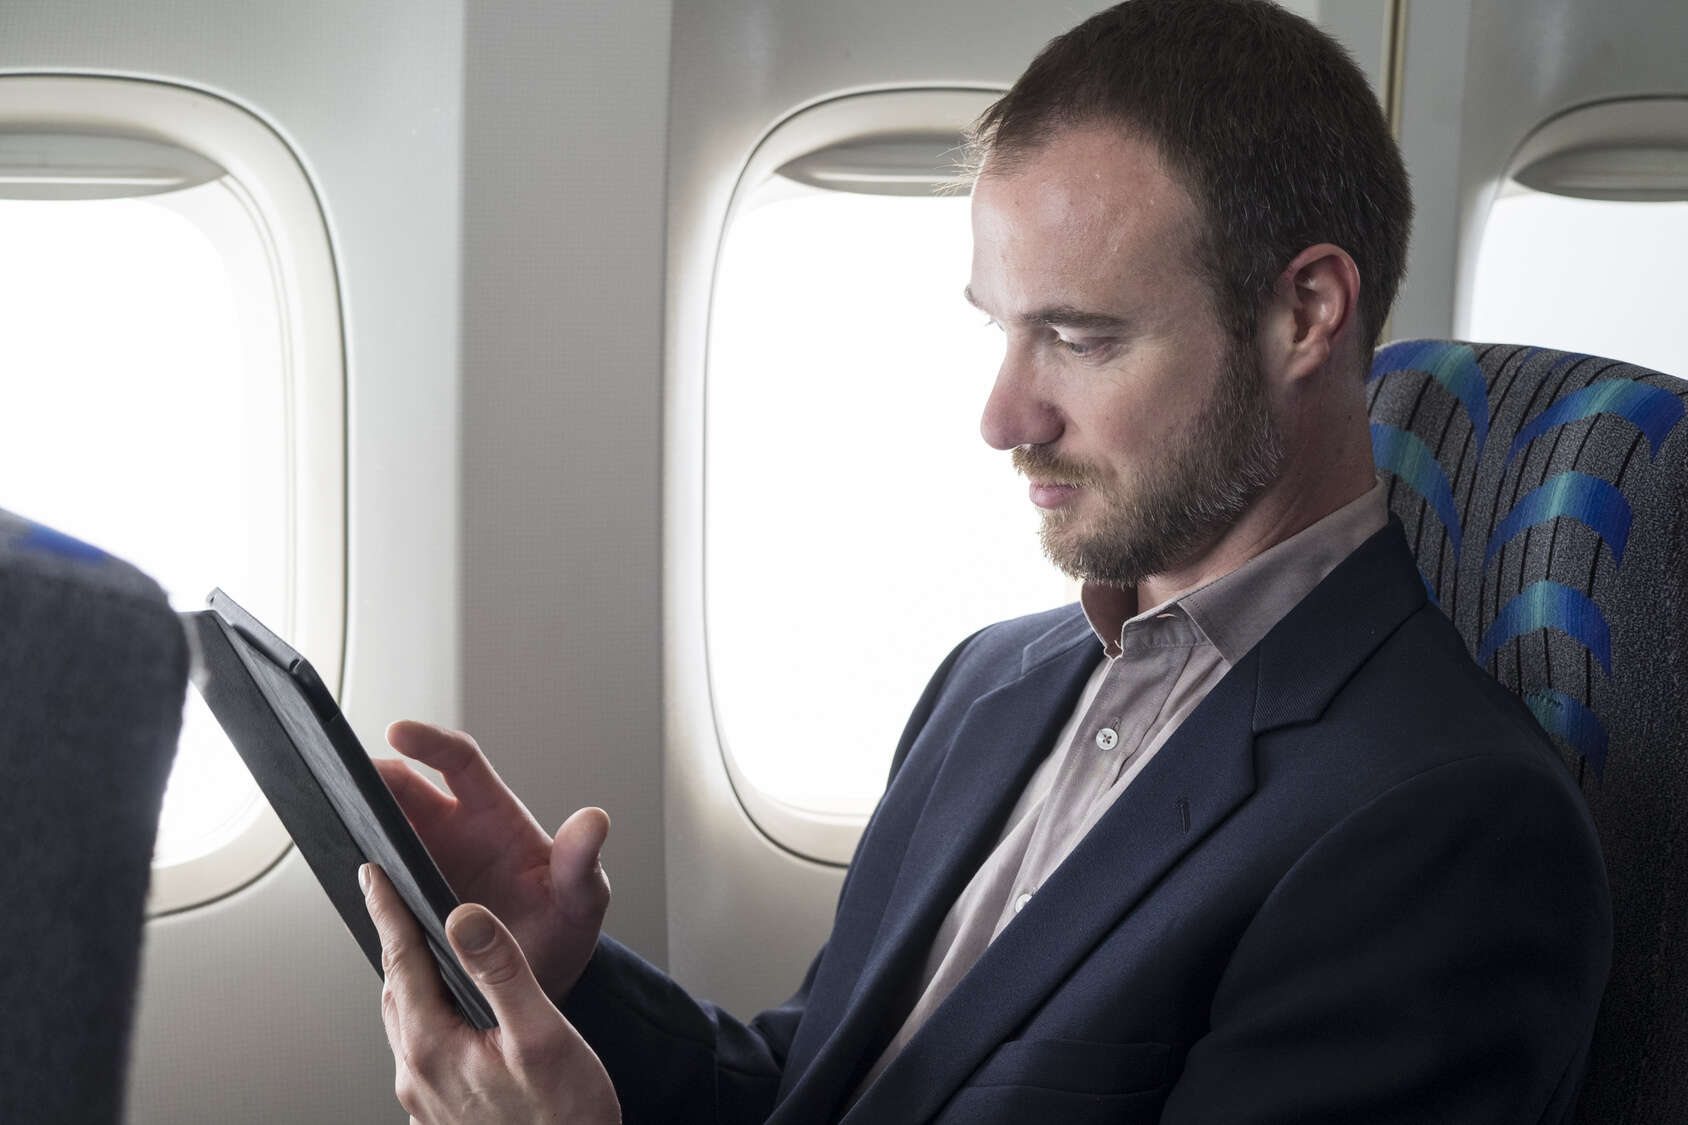 Trends in InFlight Entertainment: Delta's Media Streaming